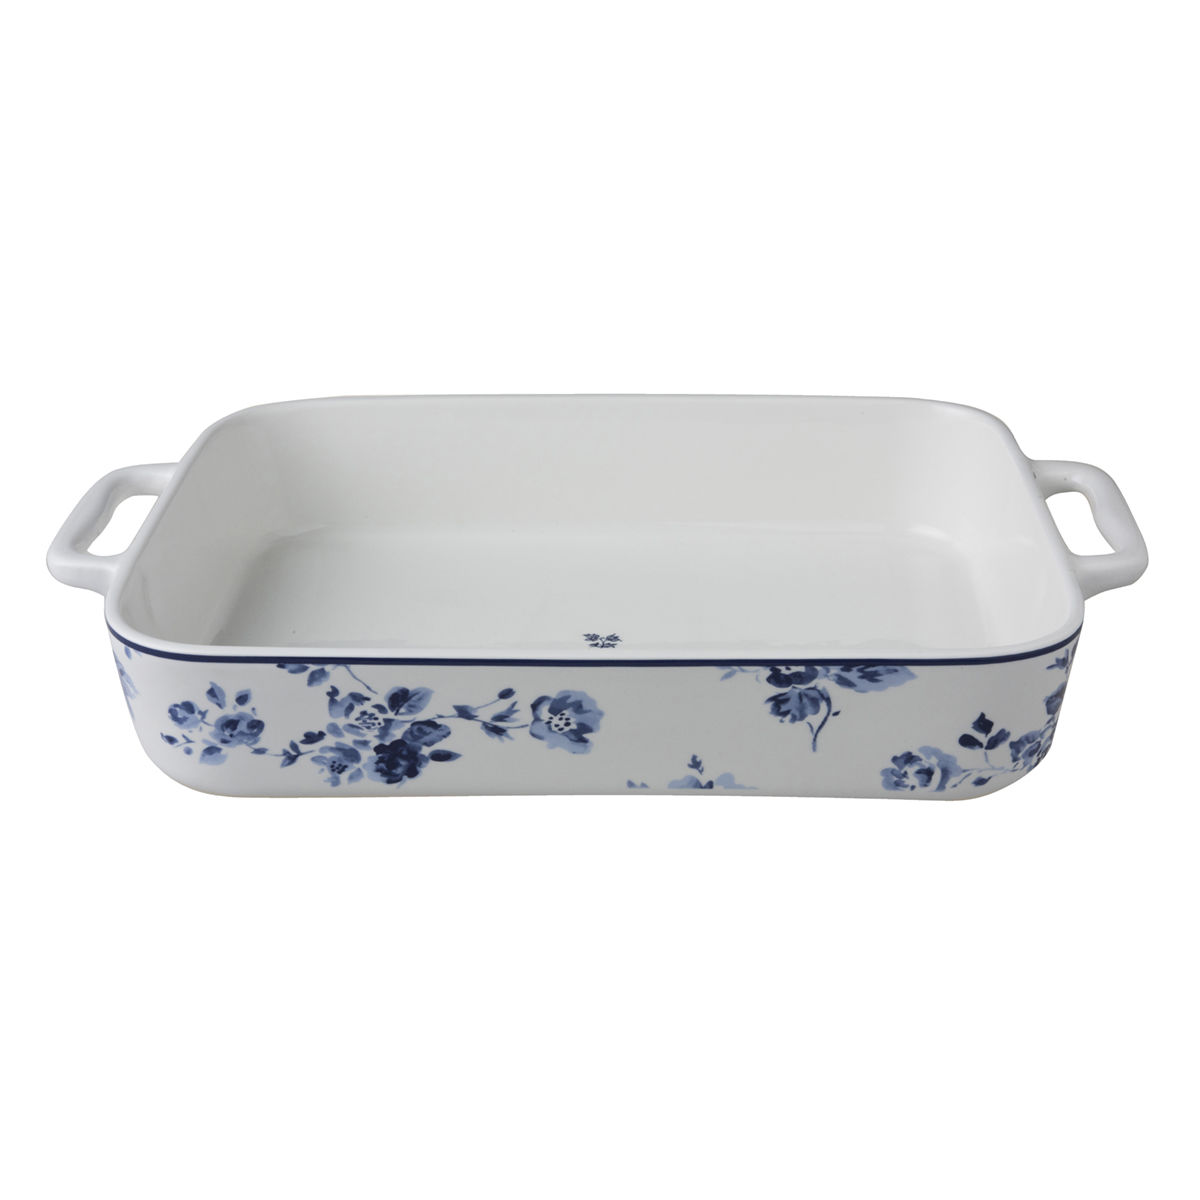 "Laura Ashley Oven Dish 8.8"" x 12.5"" Rectangular - product images  of"